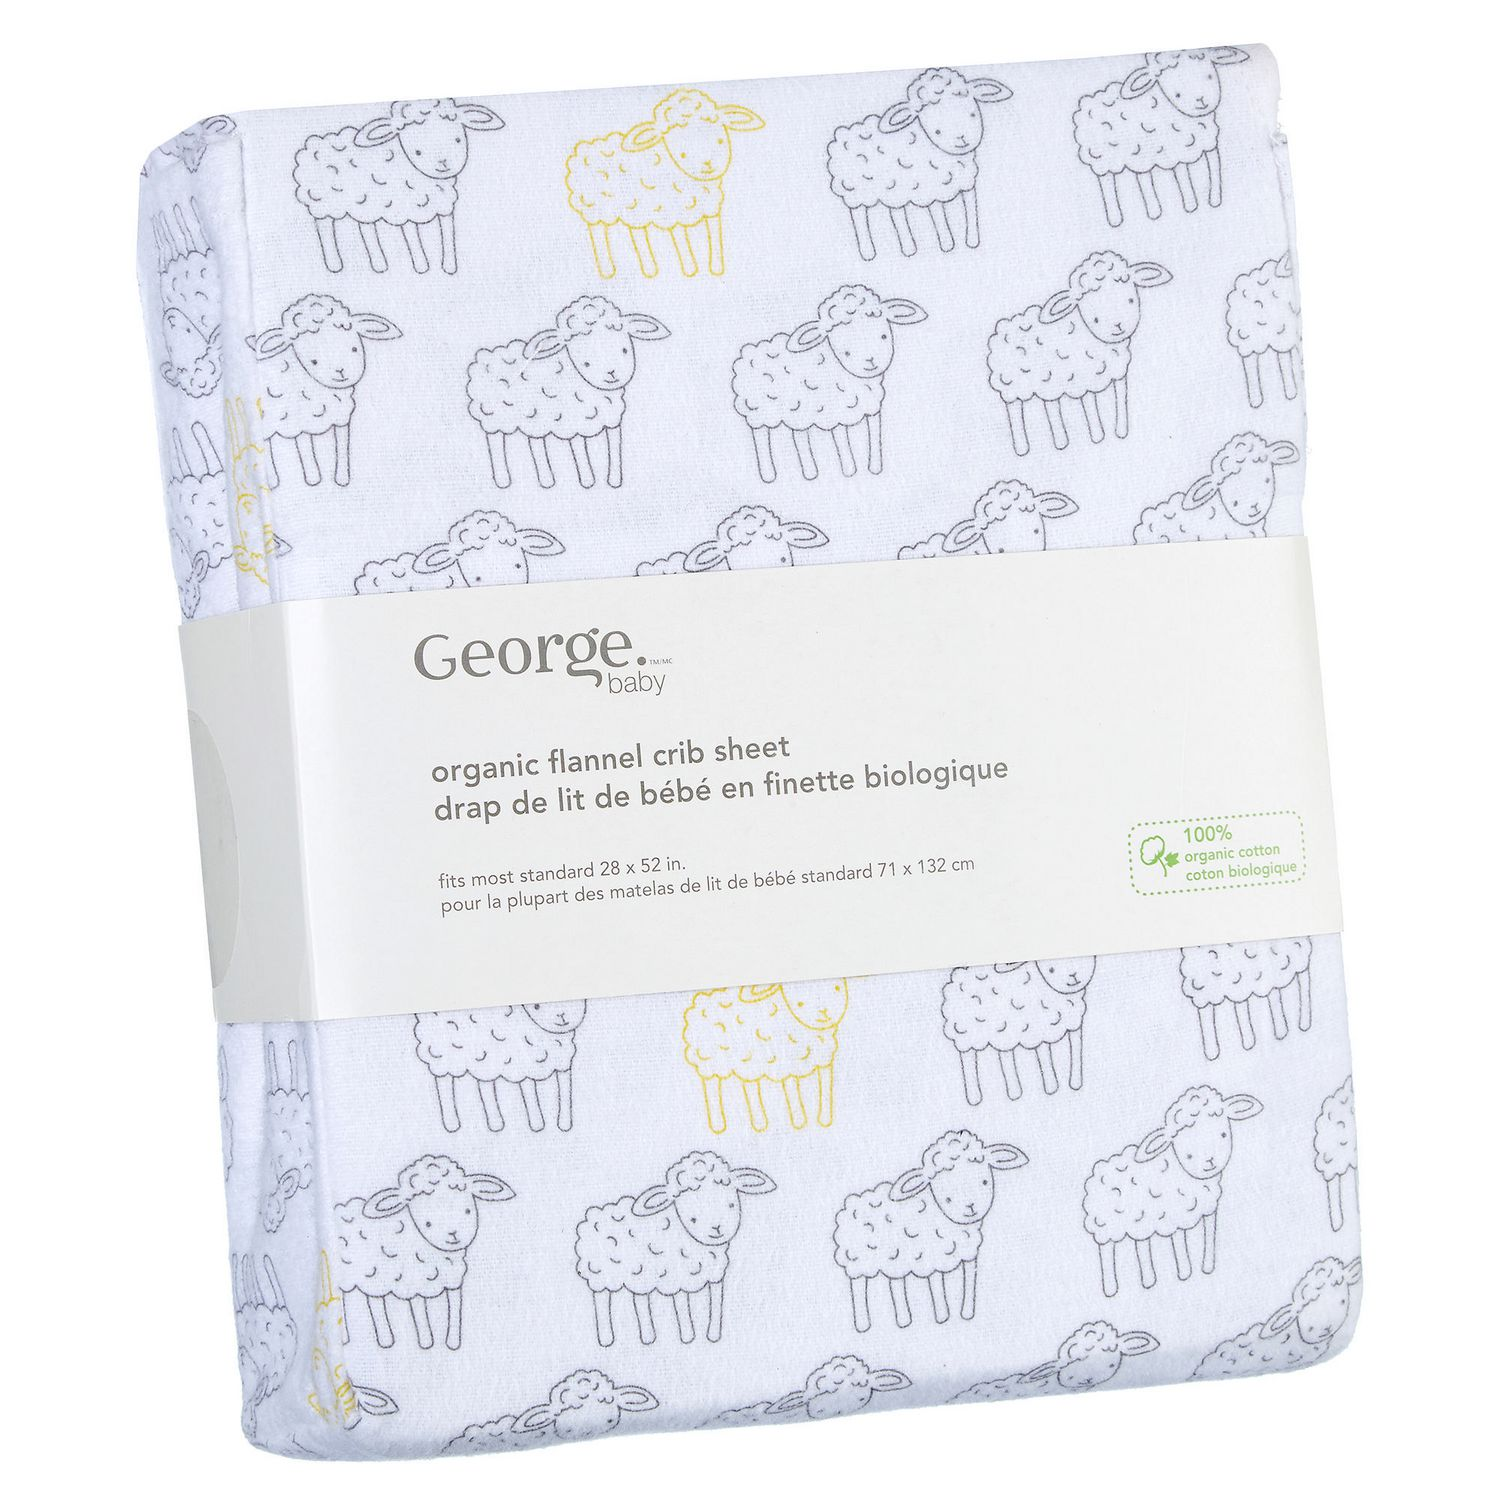 George Baby Organic Cotton Flannel Crib Sheet Walmart Canada